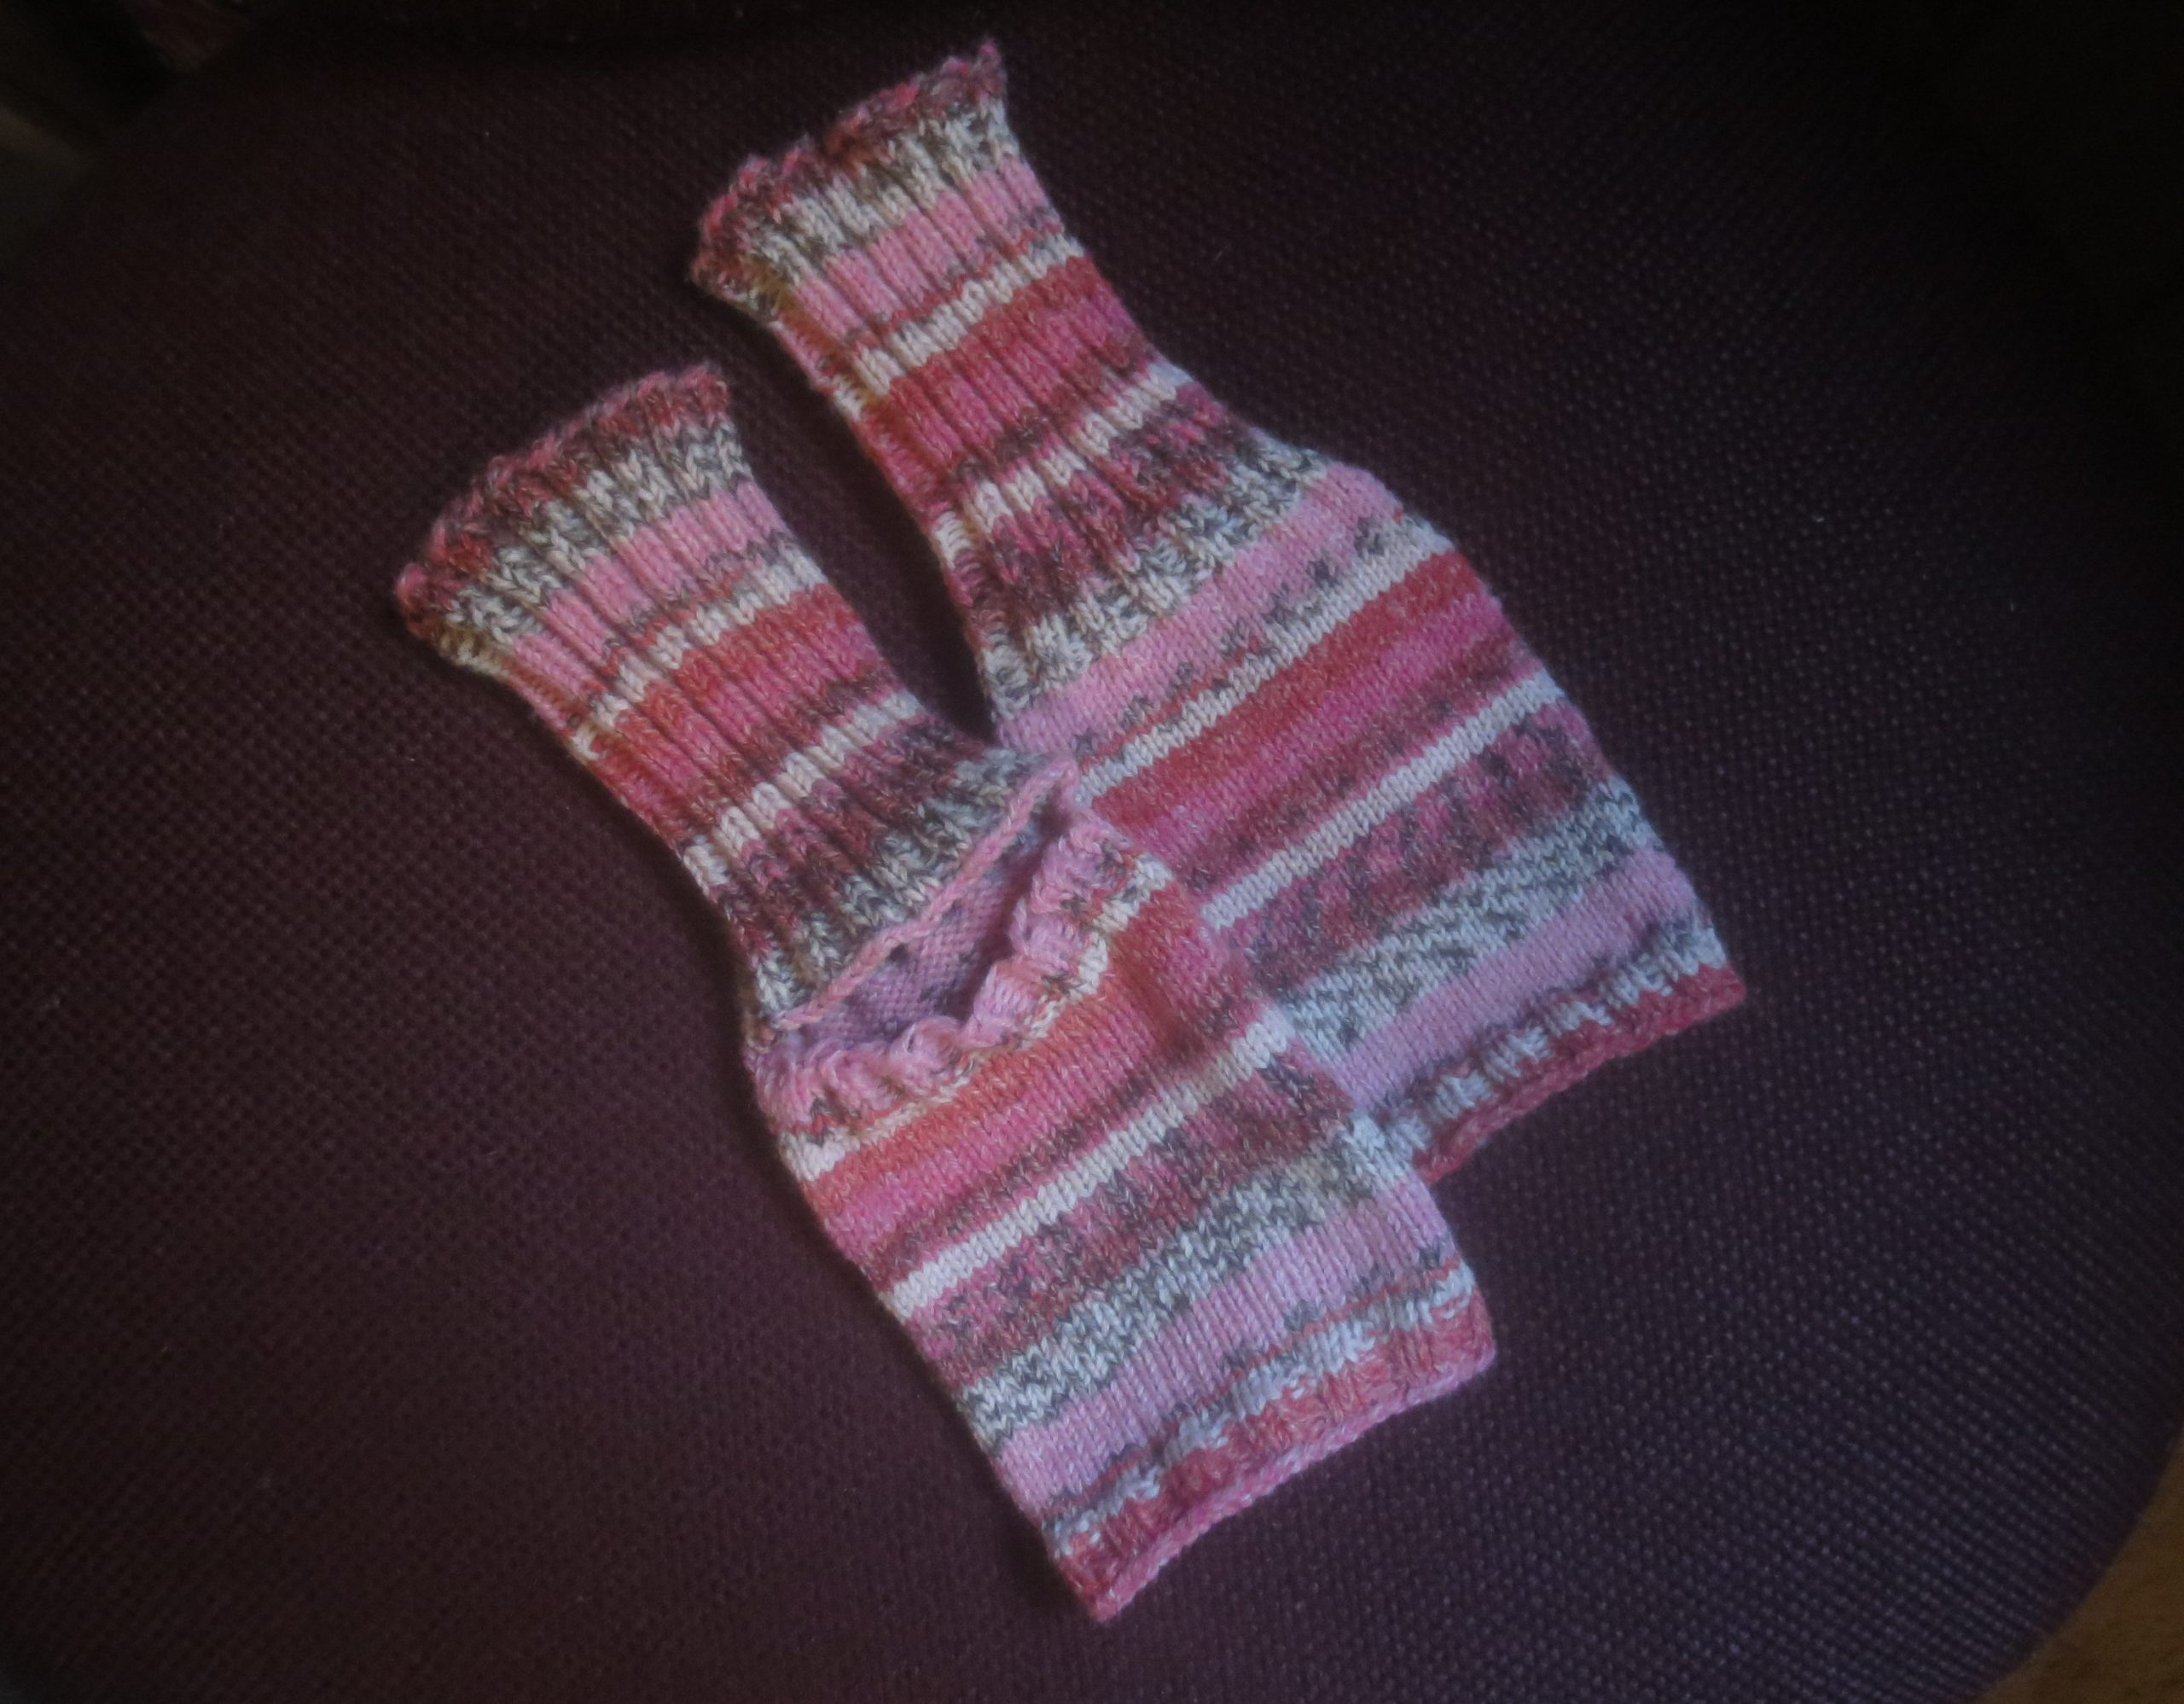 hand knit yoga socks in striped of pinks and creams and greys